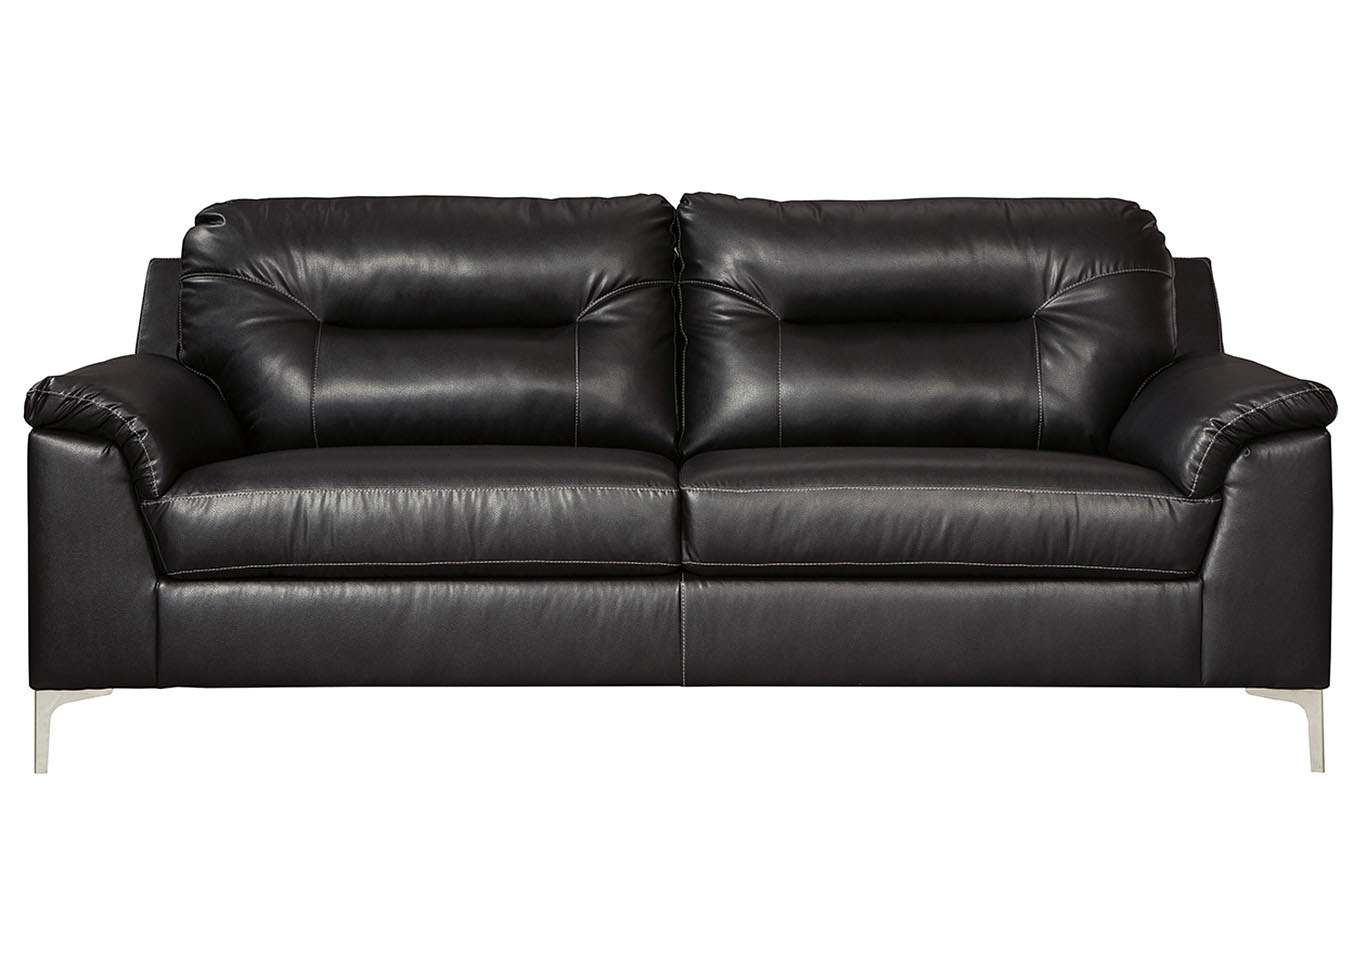 Tensas Black Sofa,Signature Design By Ashley